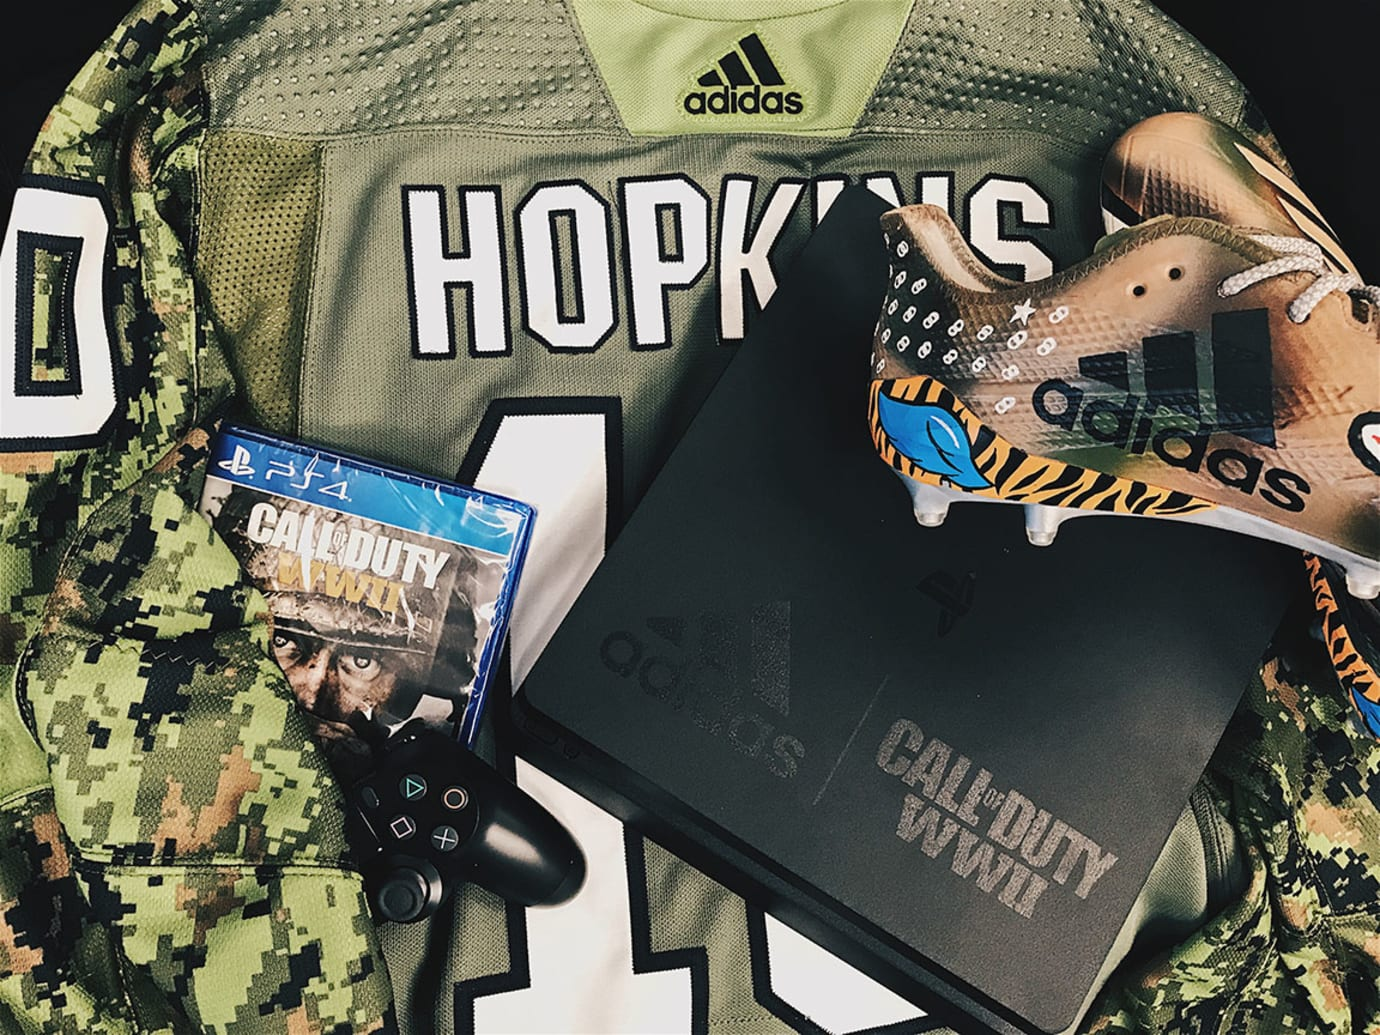 Adidas Call of Duty Cleats DeAndre Hopkins